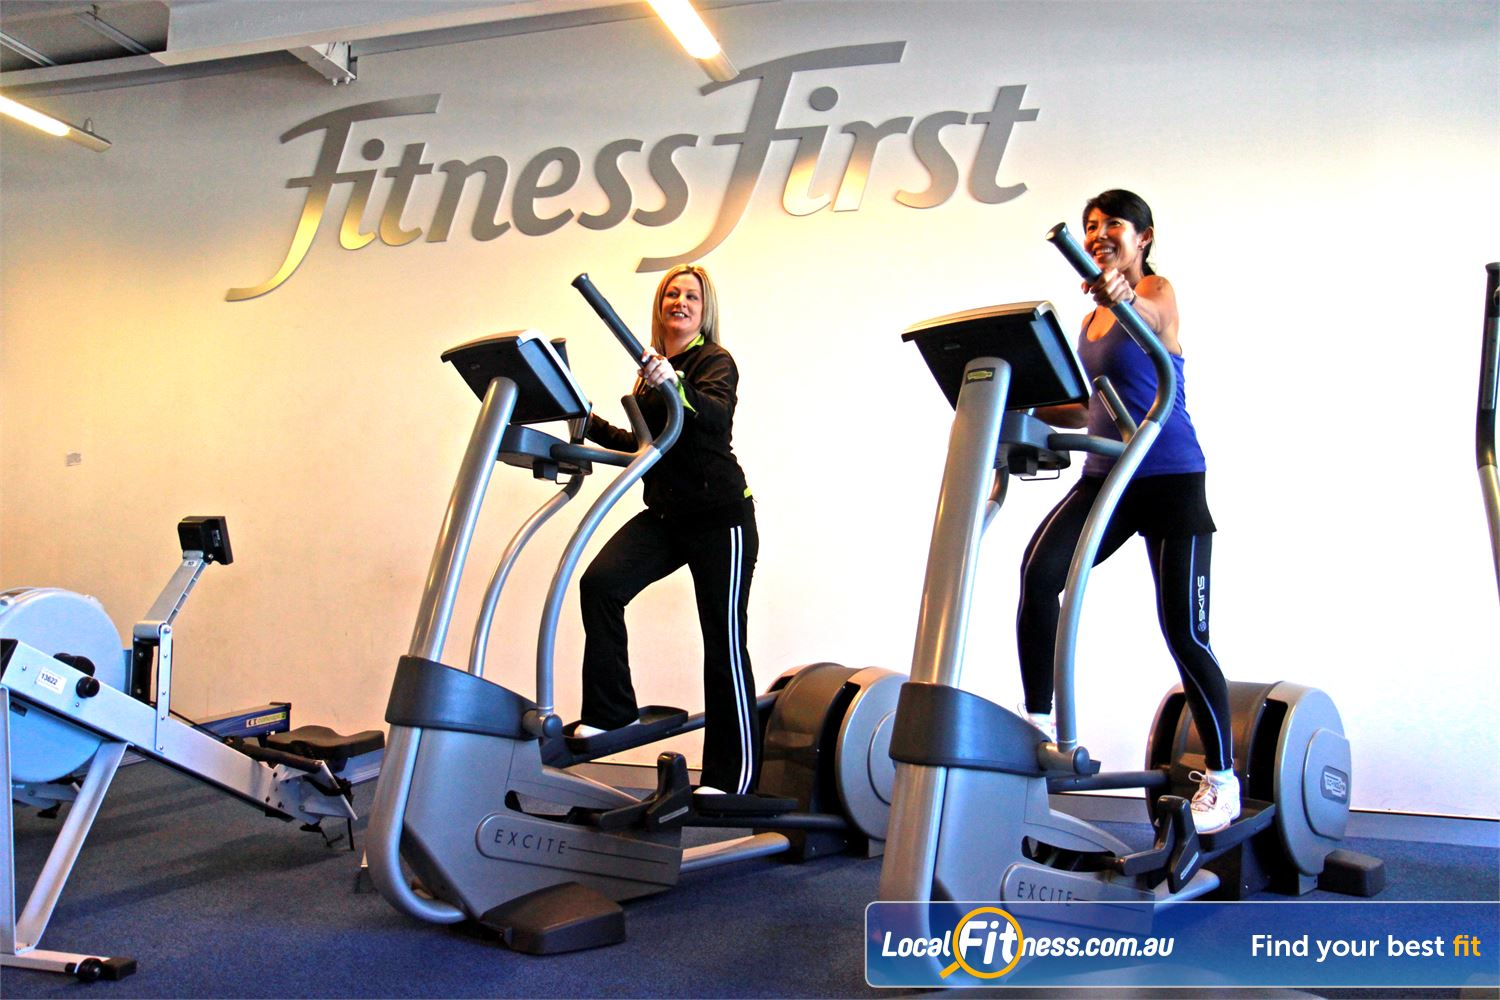 Goodlife Health Clubs Innaloo We provide a cardio theatre down stairs, and cardio setup upstairs so you wait less and train more.